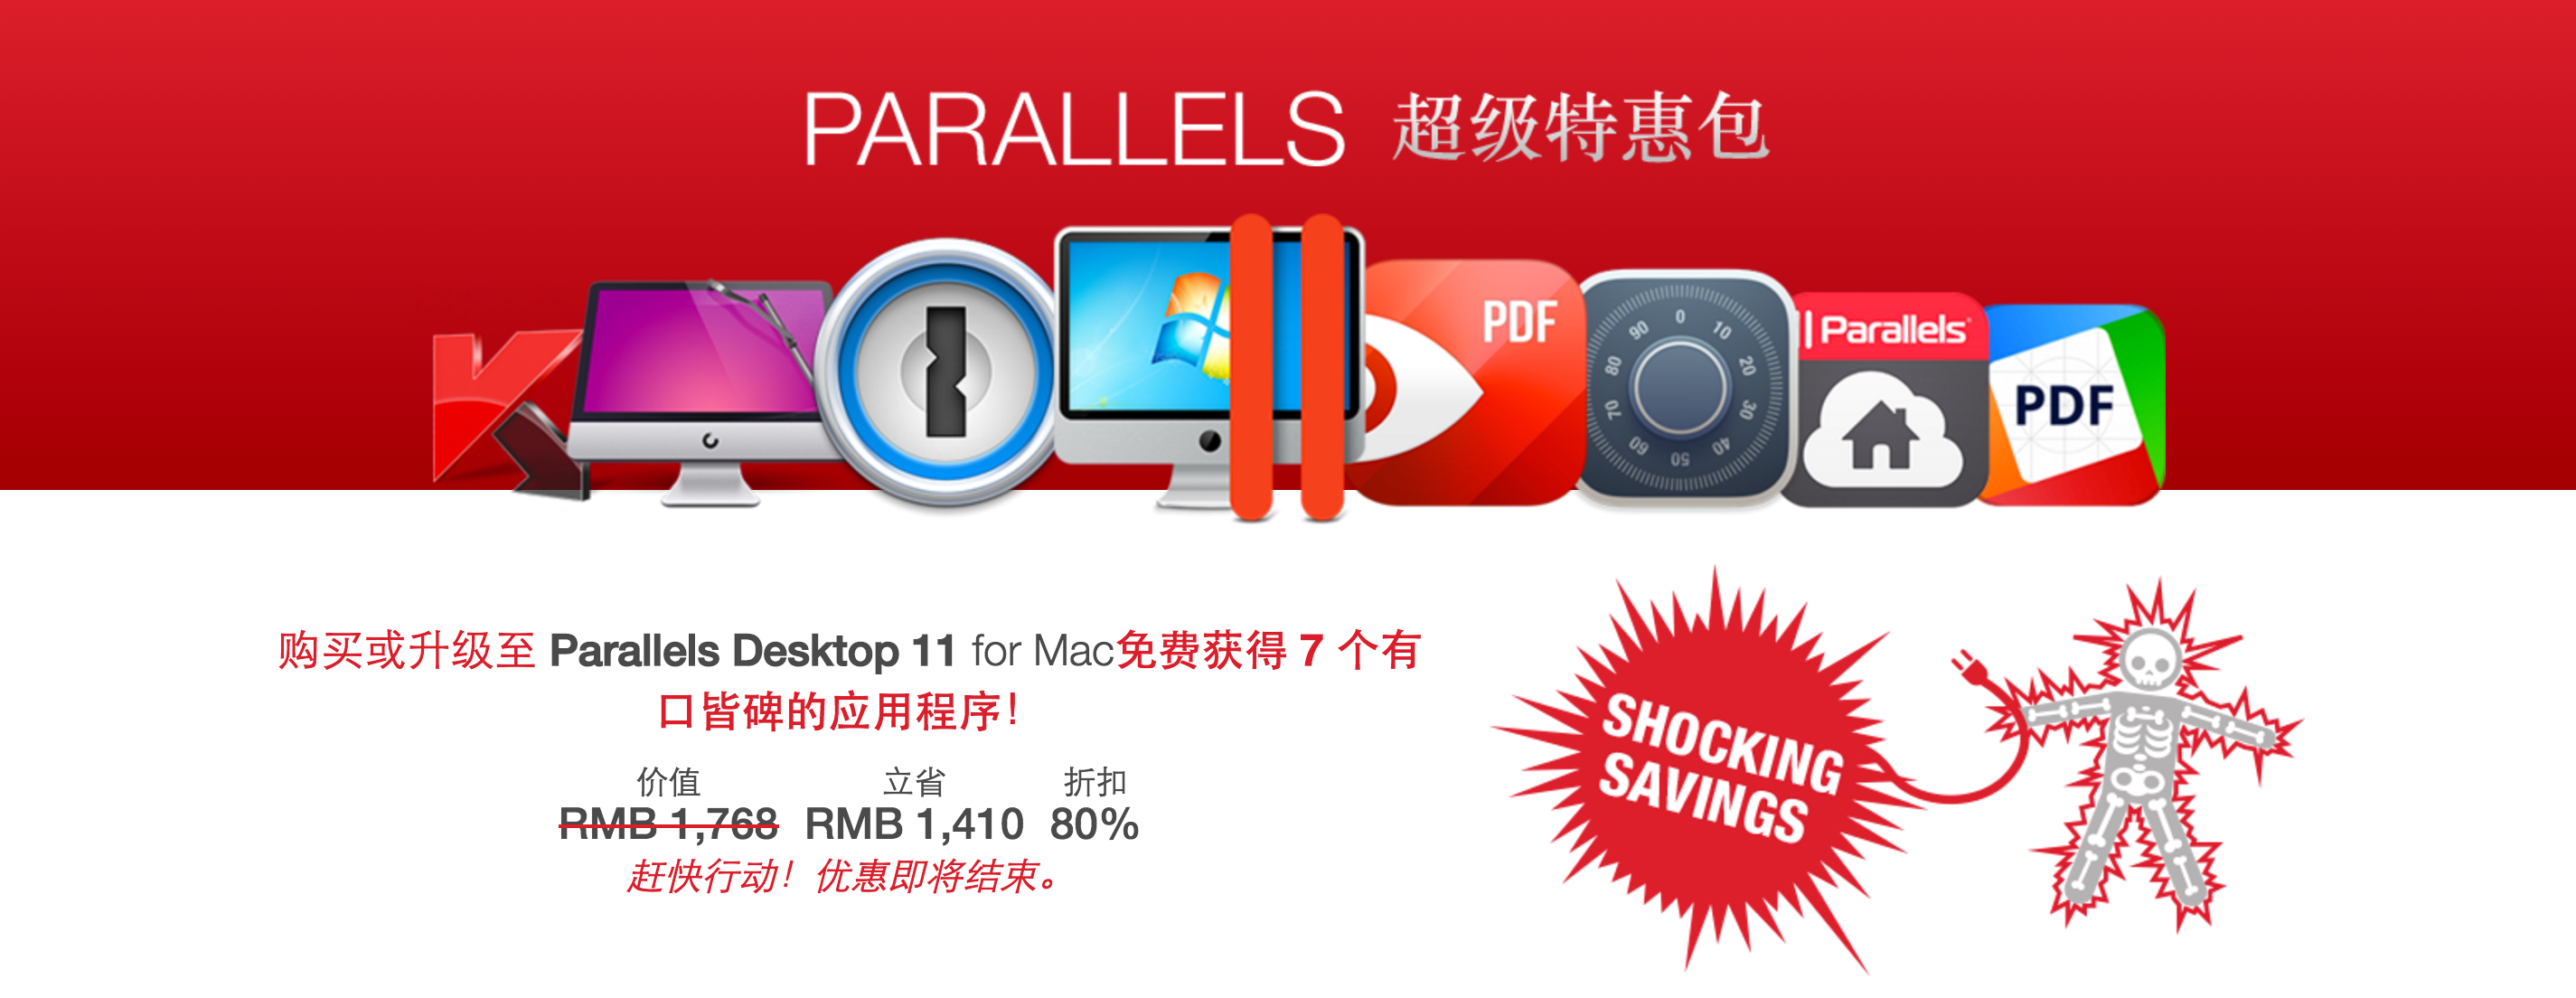 Parallels-Promotional-001